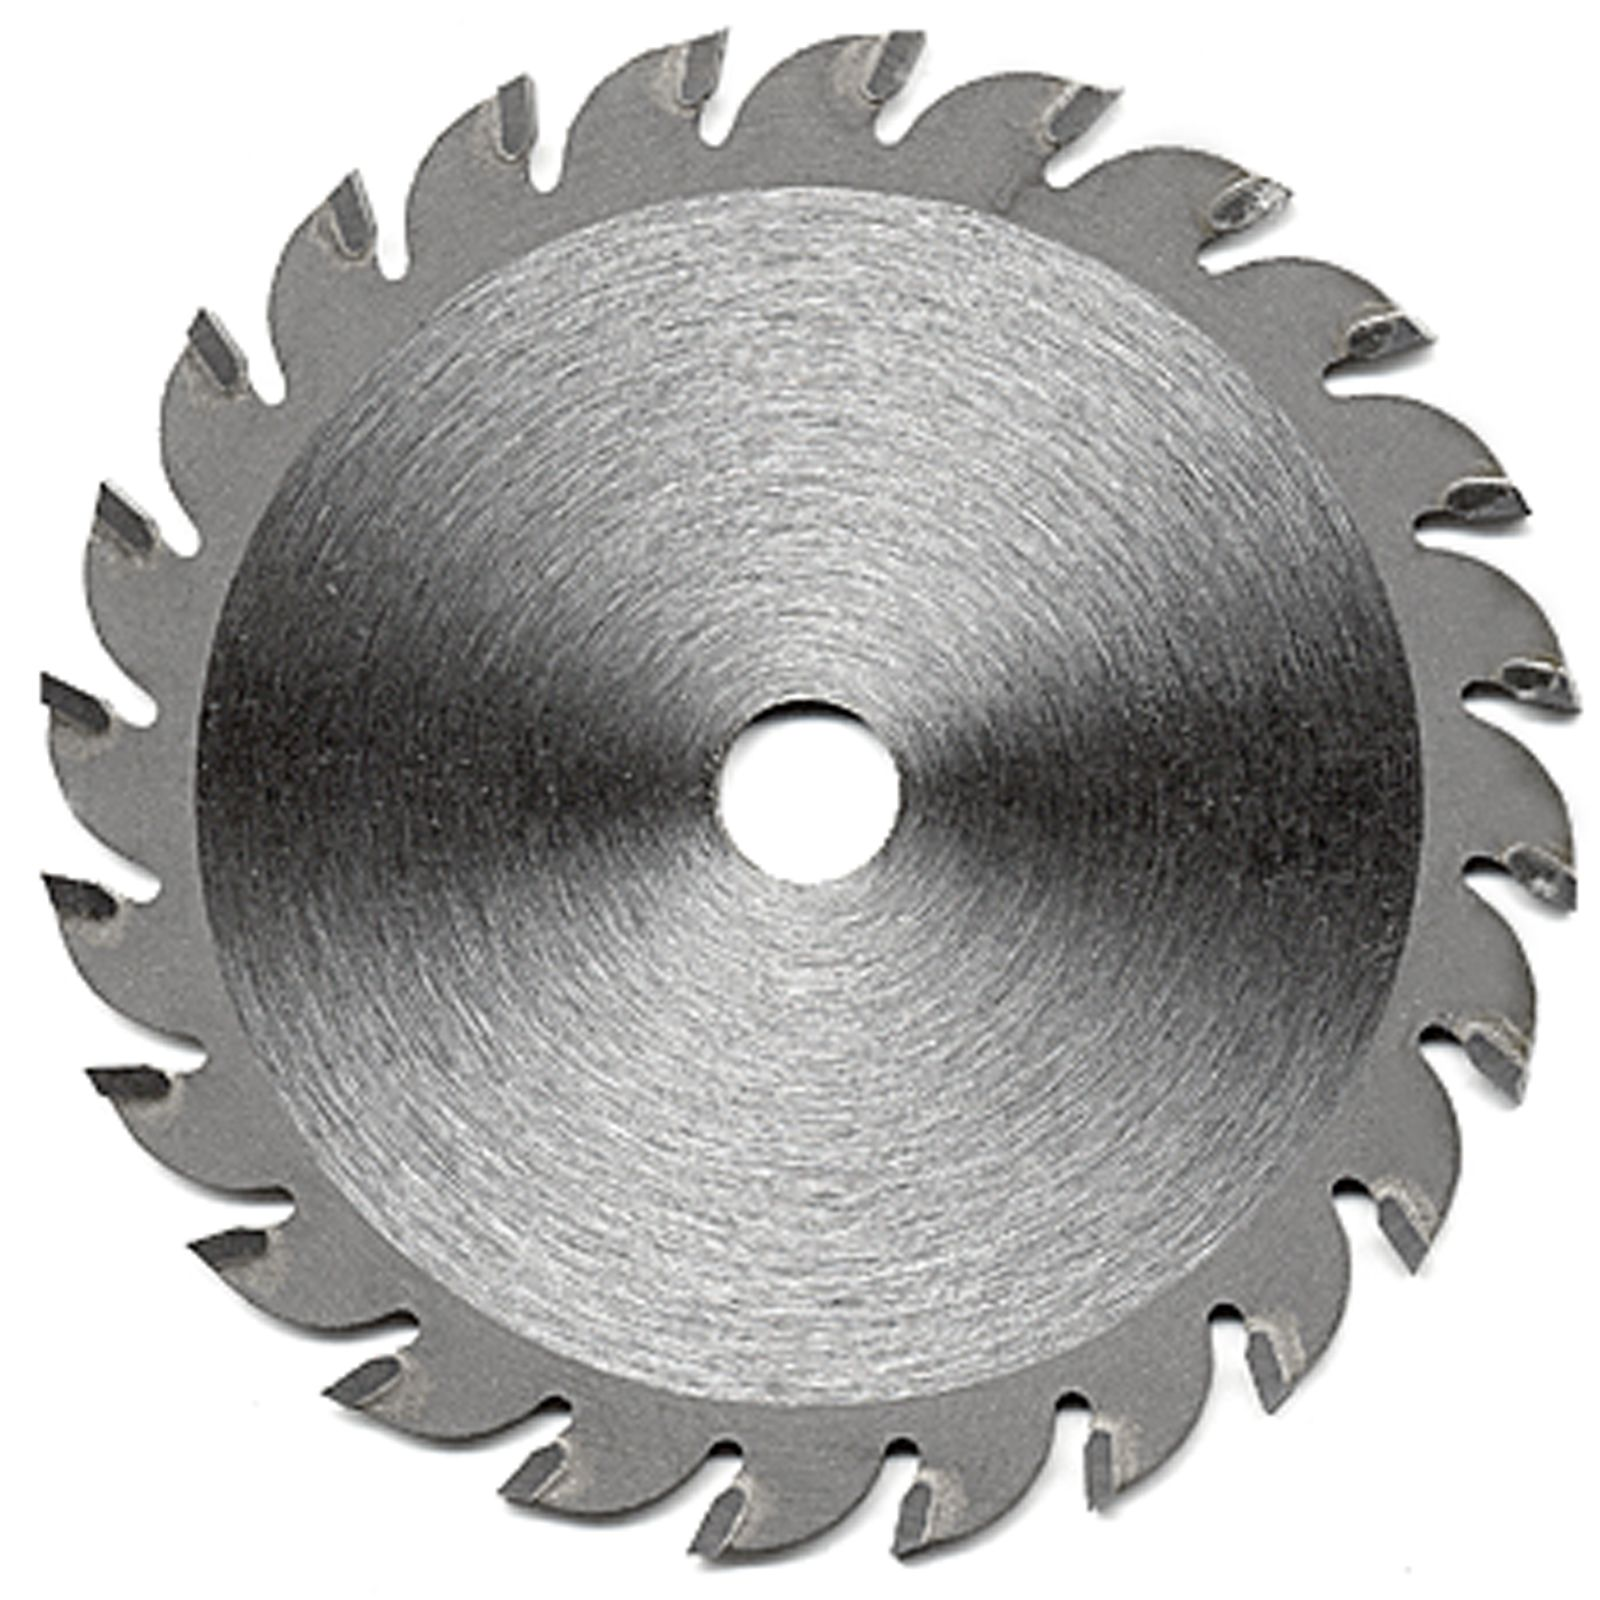 24 Tooth Carbide Tip Saw Blade Table Saw Saw Blade Craftsman Table Saw